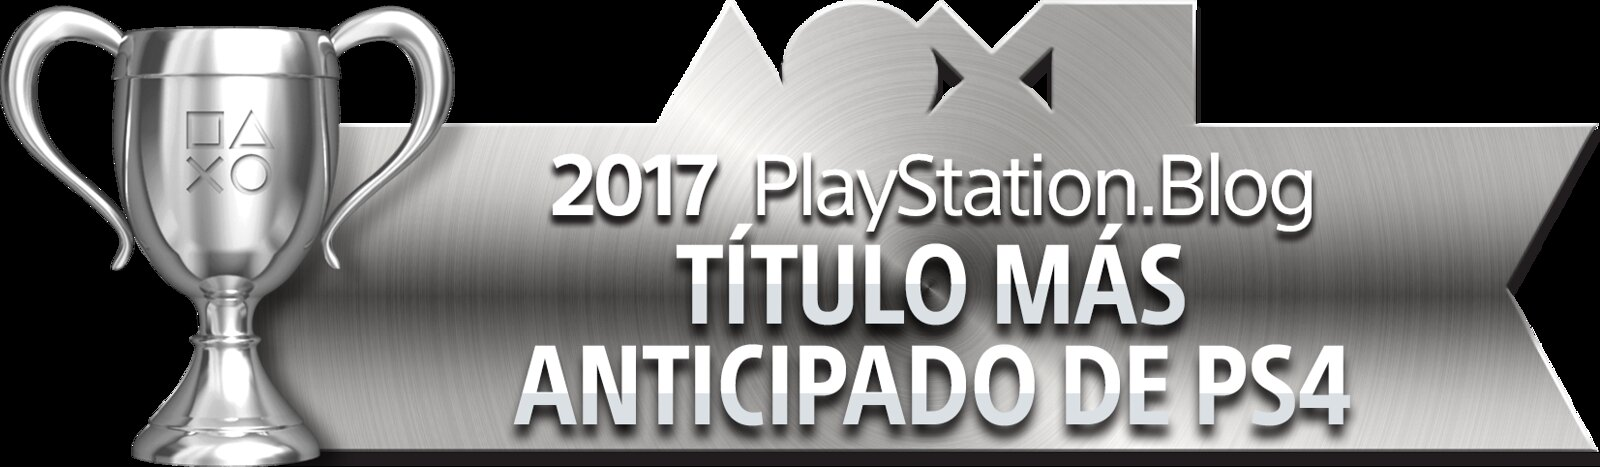 PlayStation Blog Game of the Year 2017 - Most Anticipated PS4 Title (Silver)